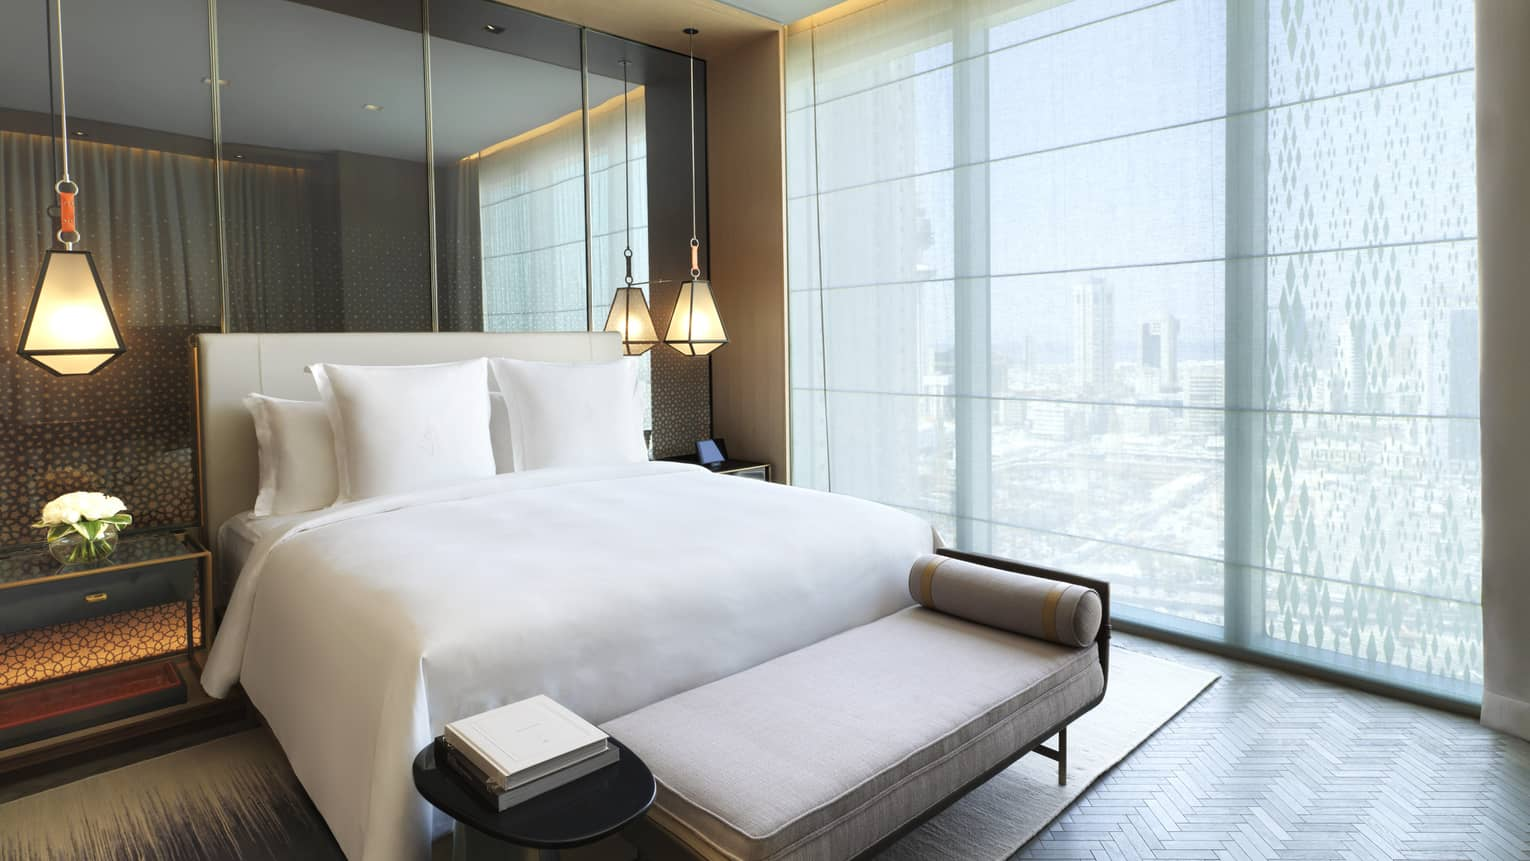 Four Seasons Executive Suite bed in front of mirror wall, hanging lights, beside floor-to-ceiling window